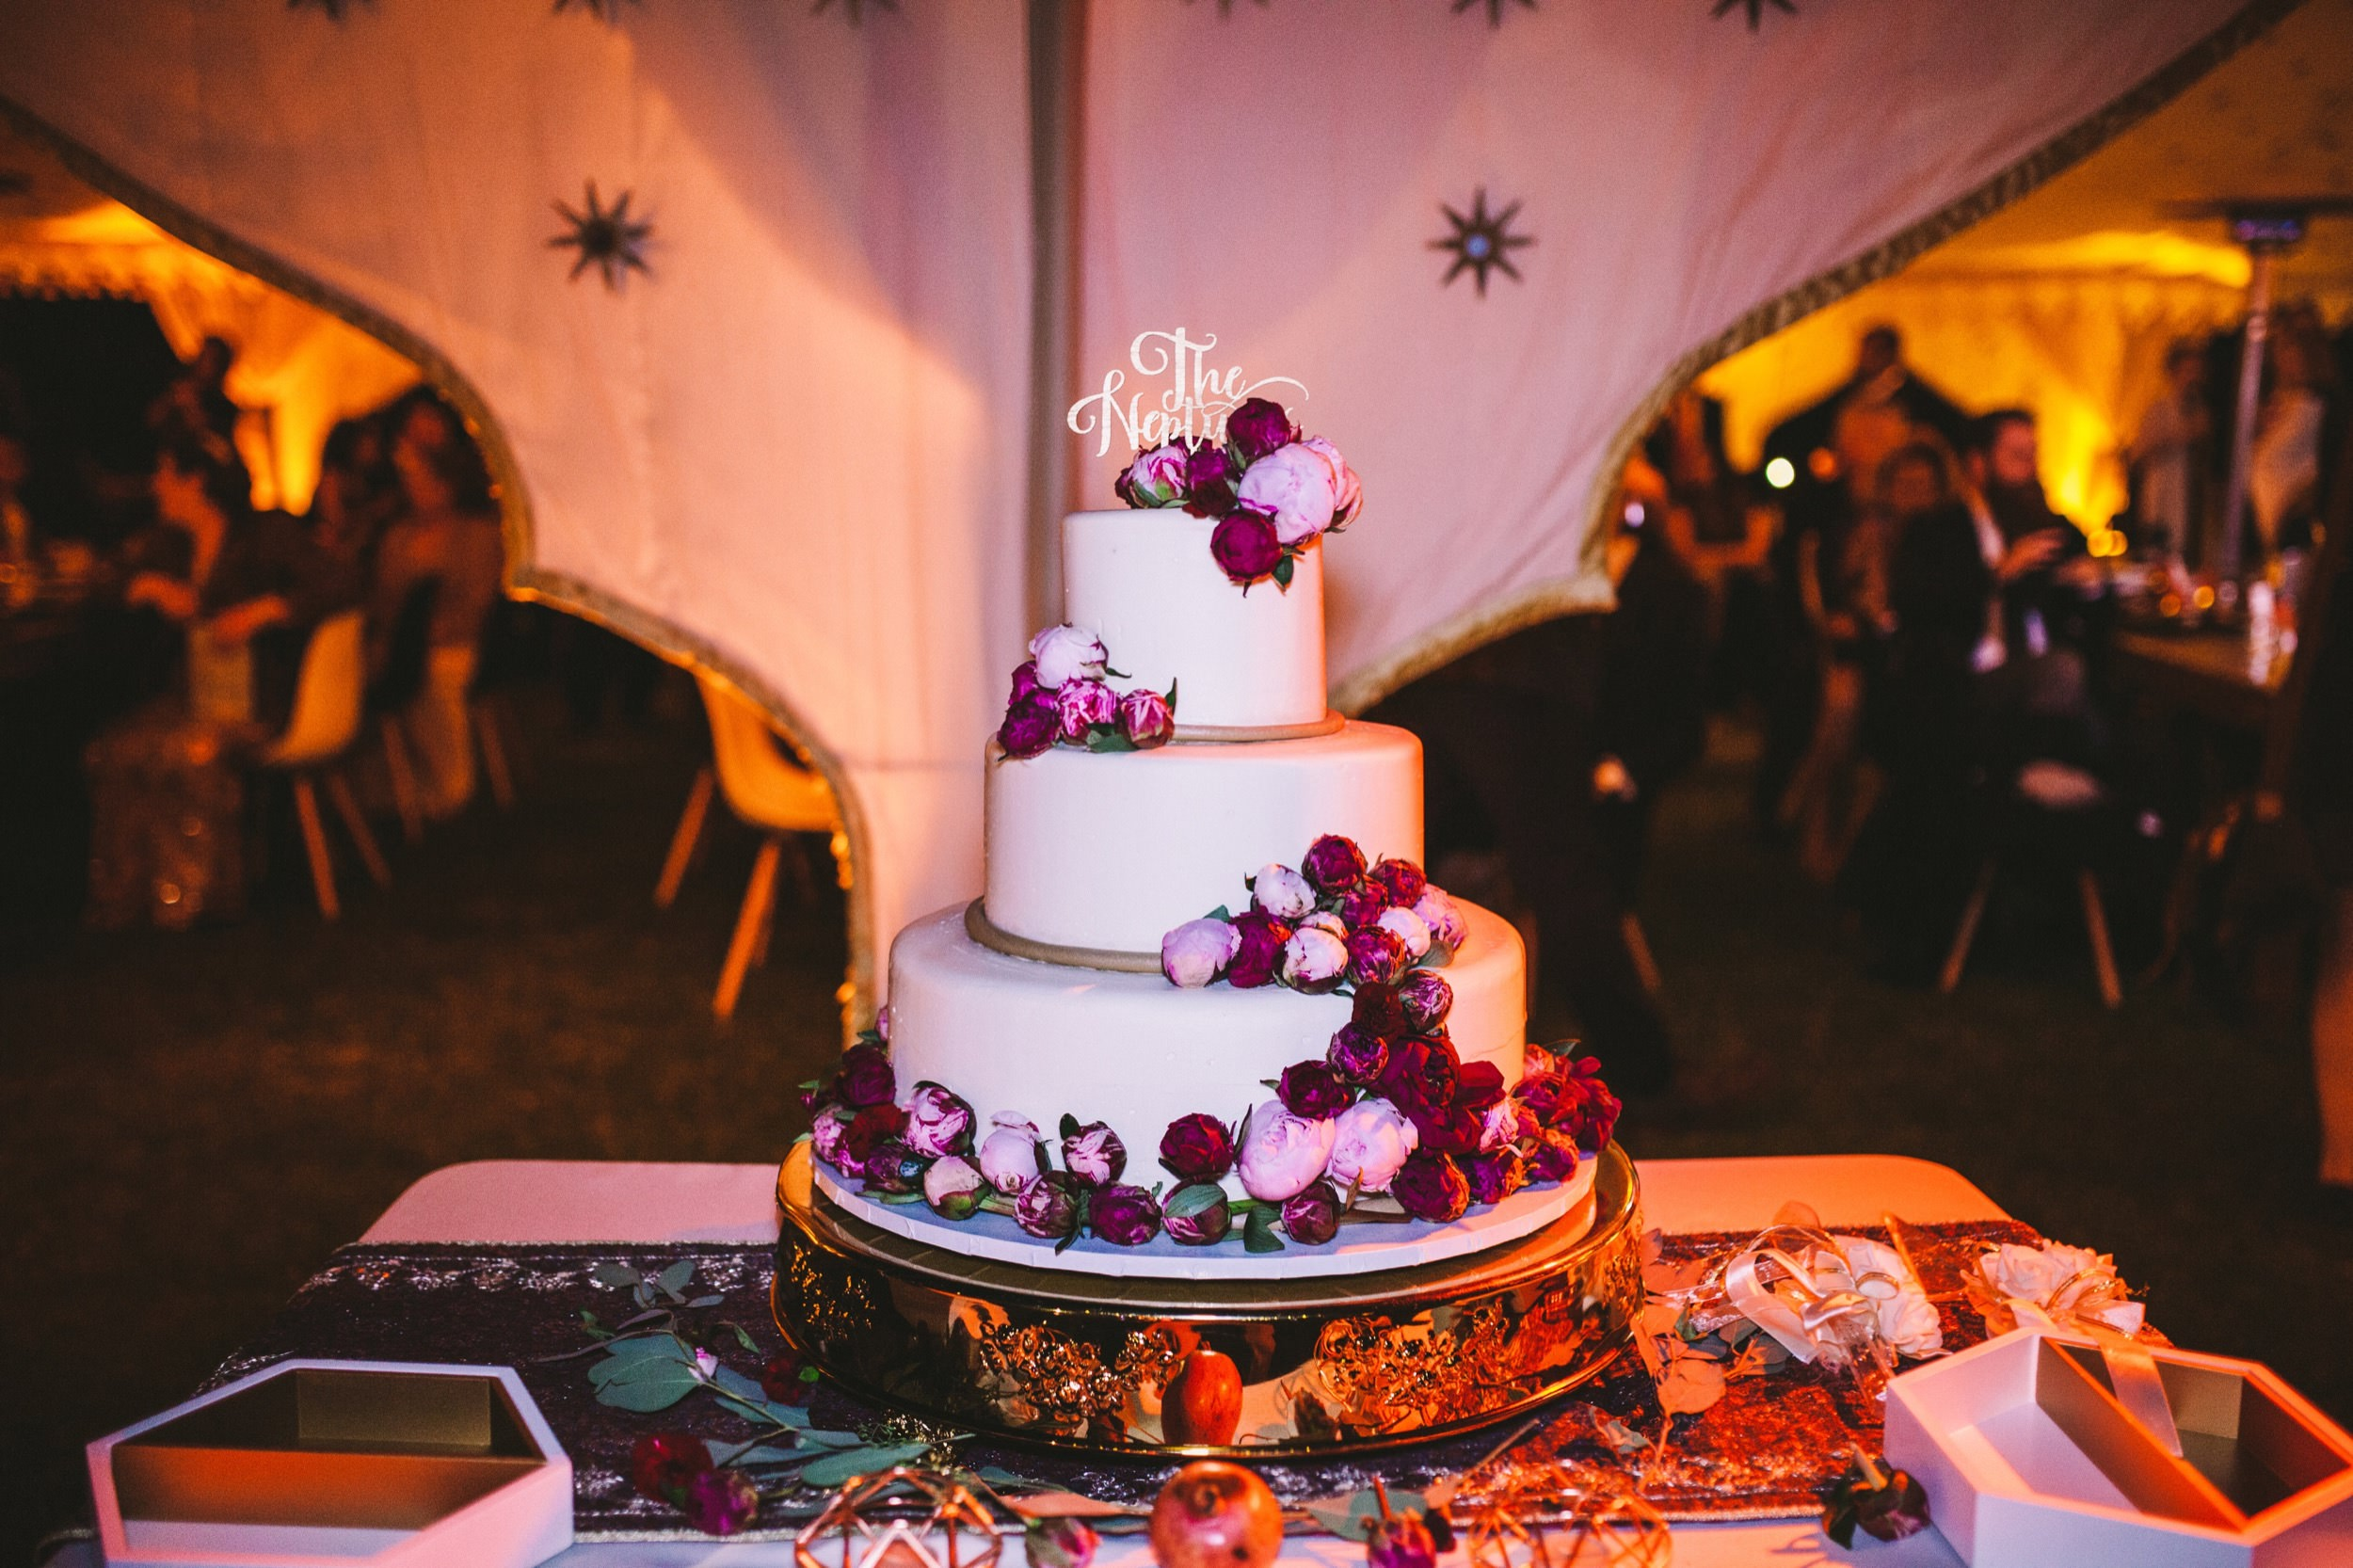 Rose & Pomegranate Decorated Wedding Cake for Persian Wedding